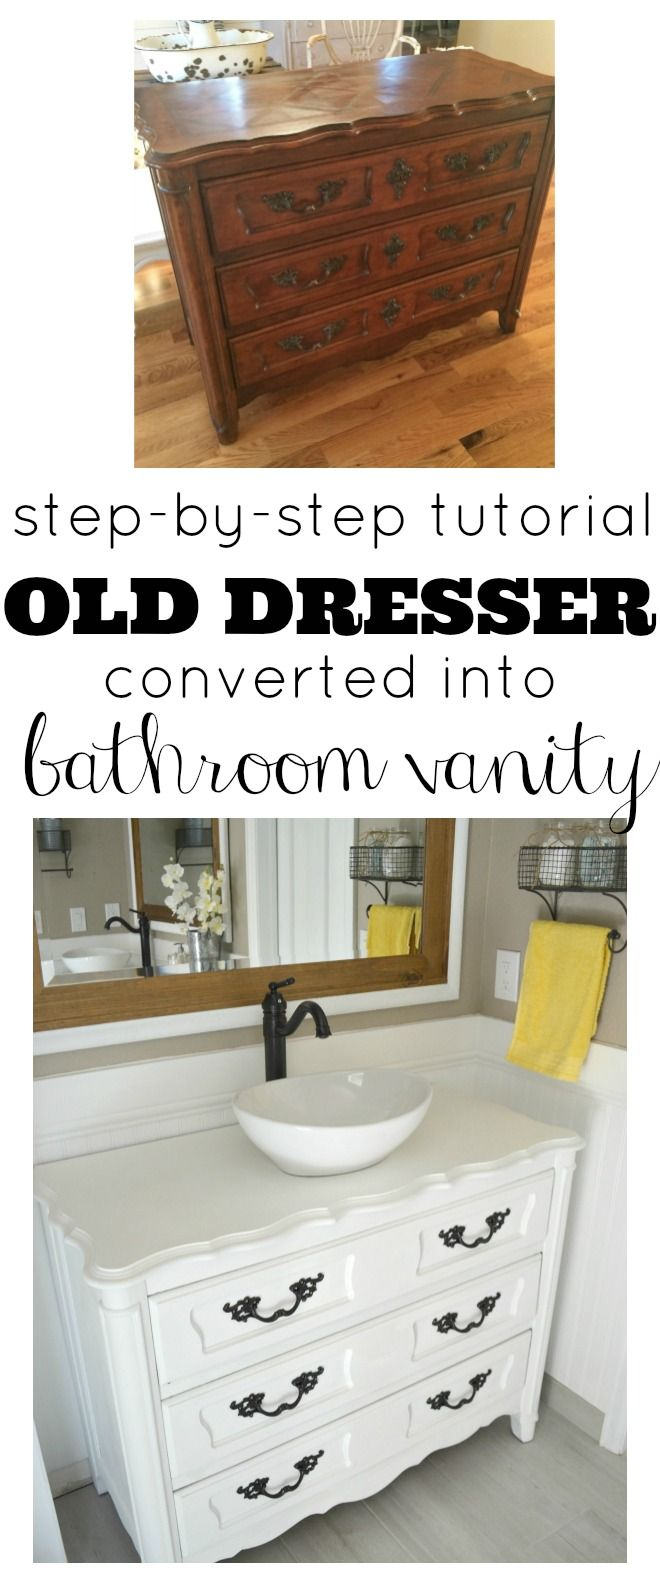 Remodeled Bathroom Vanity Using Old Dresser best 25+ dresser to vanity ideas only on pinterest | dresser